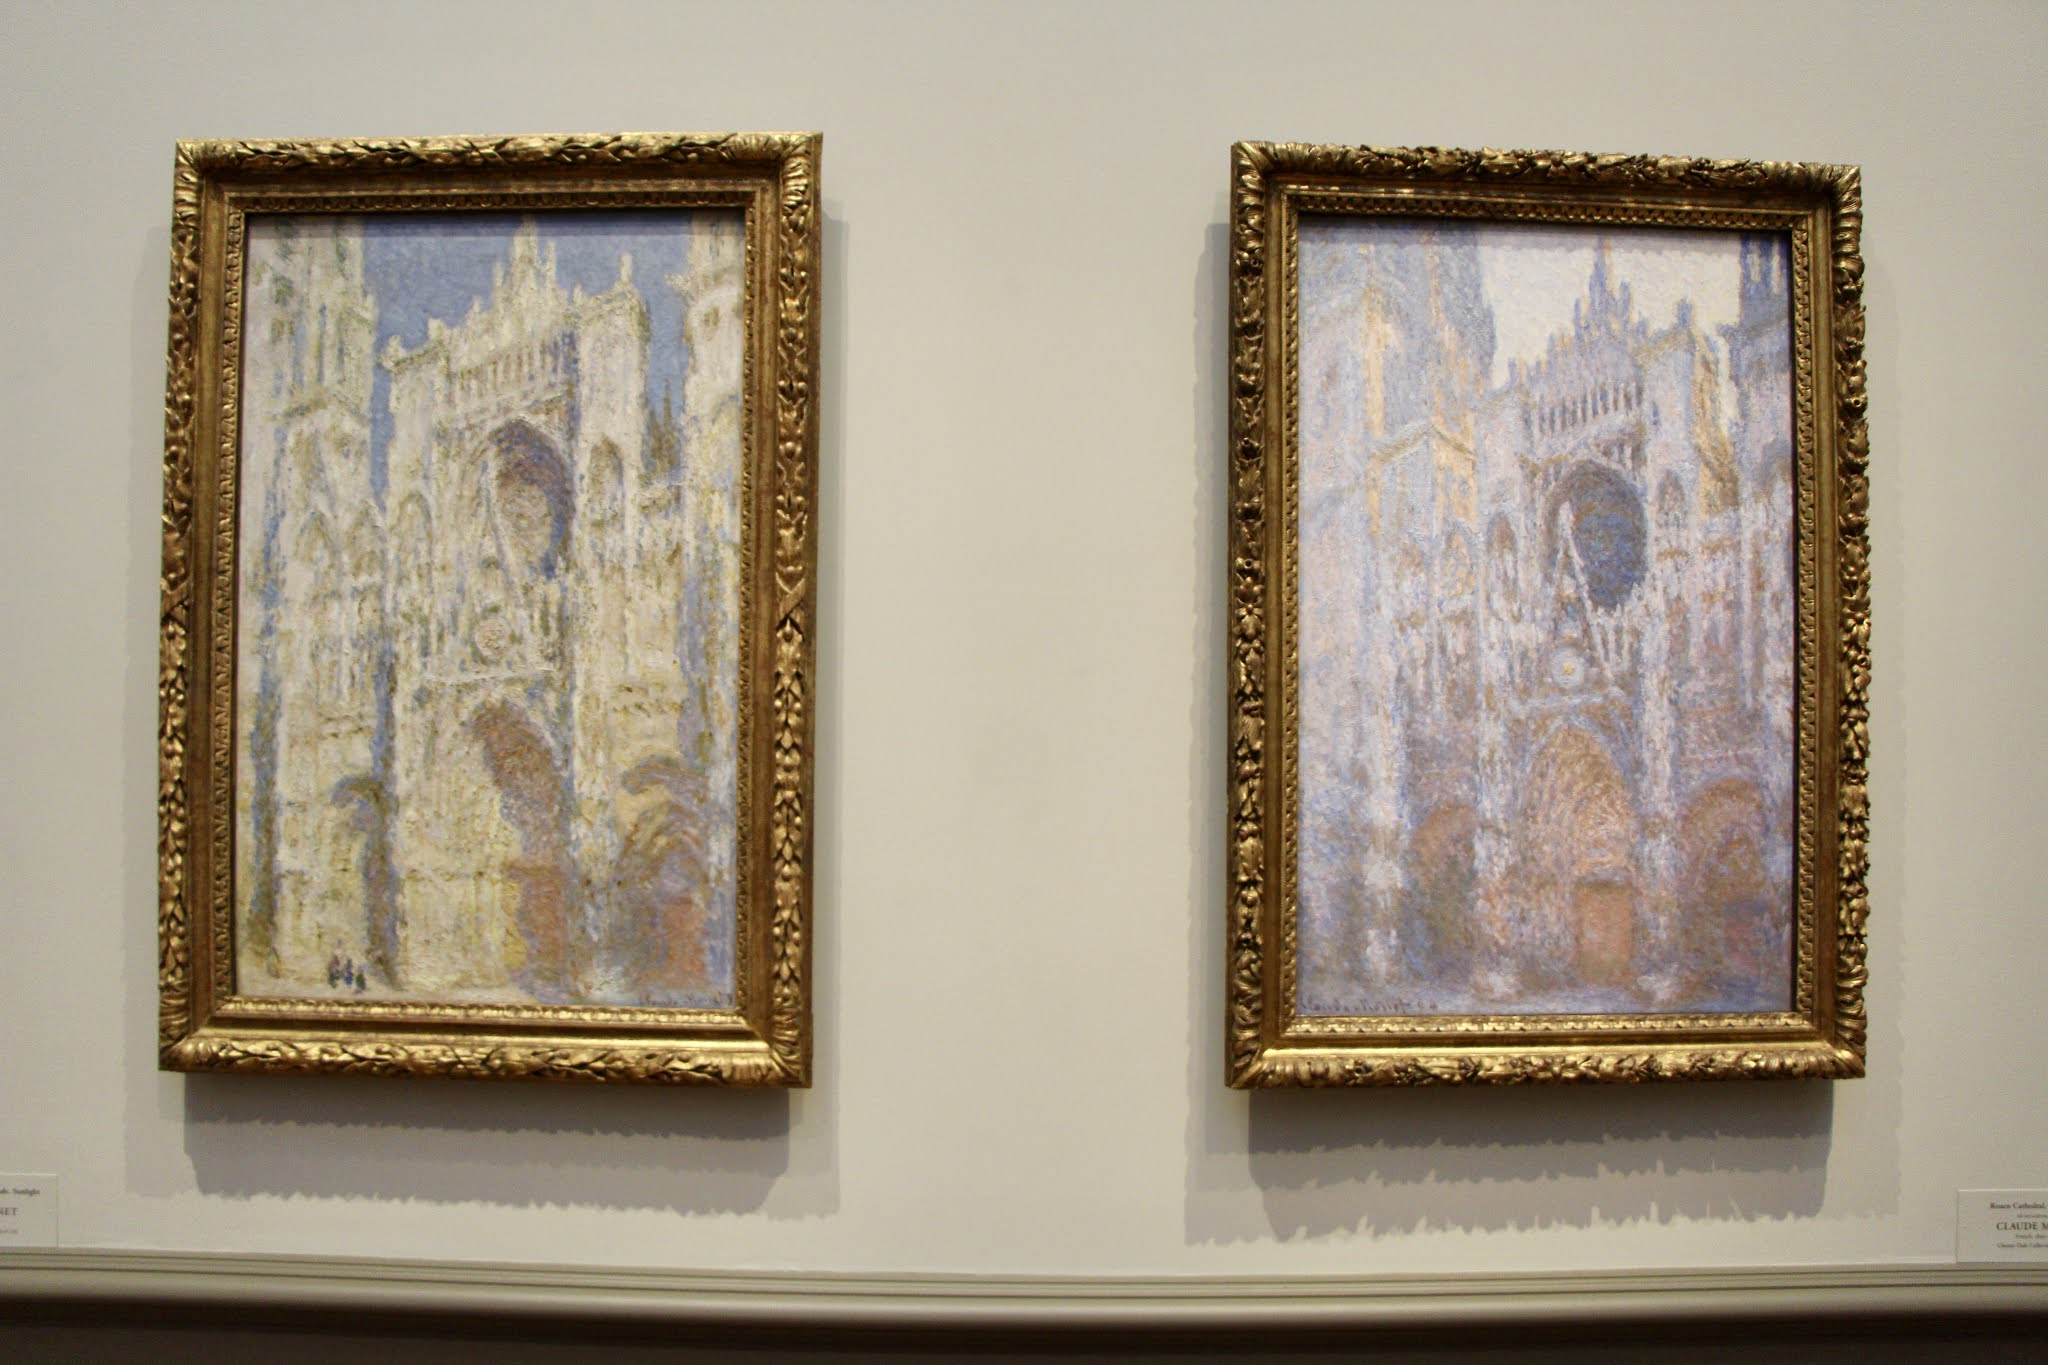 french impressionism, national gallery, Washington travel guide